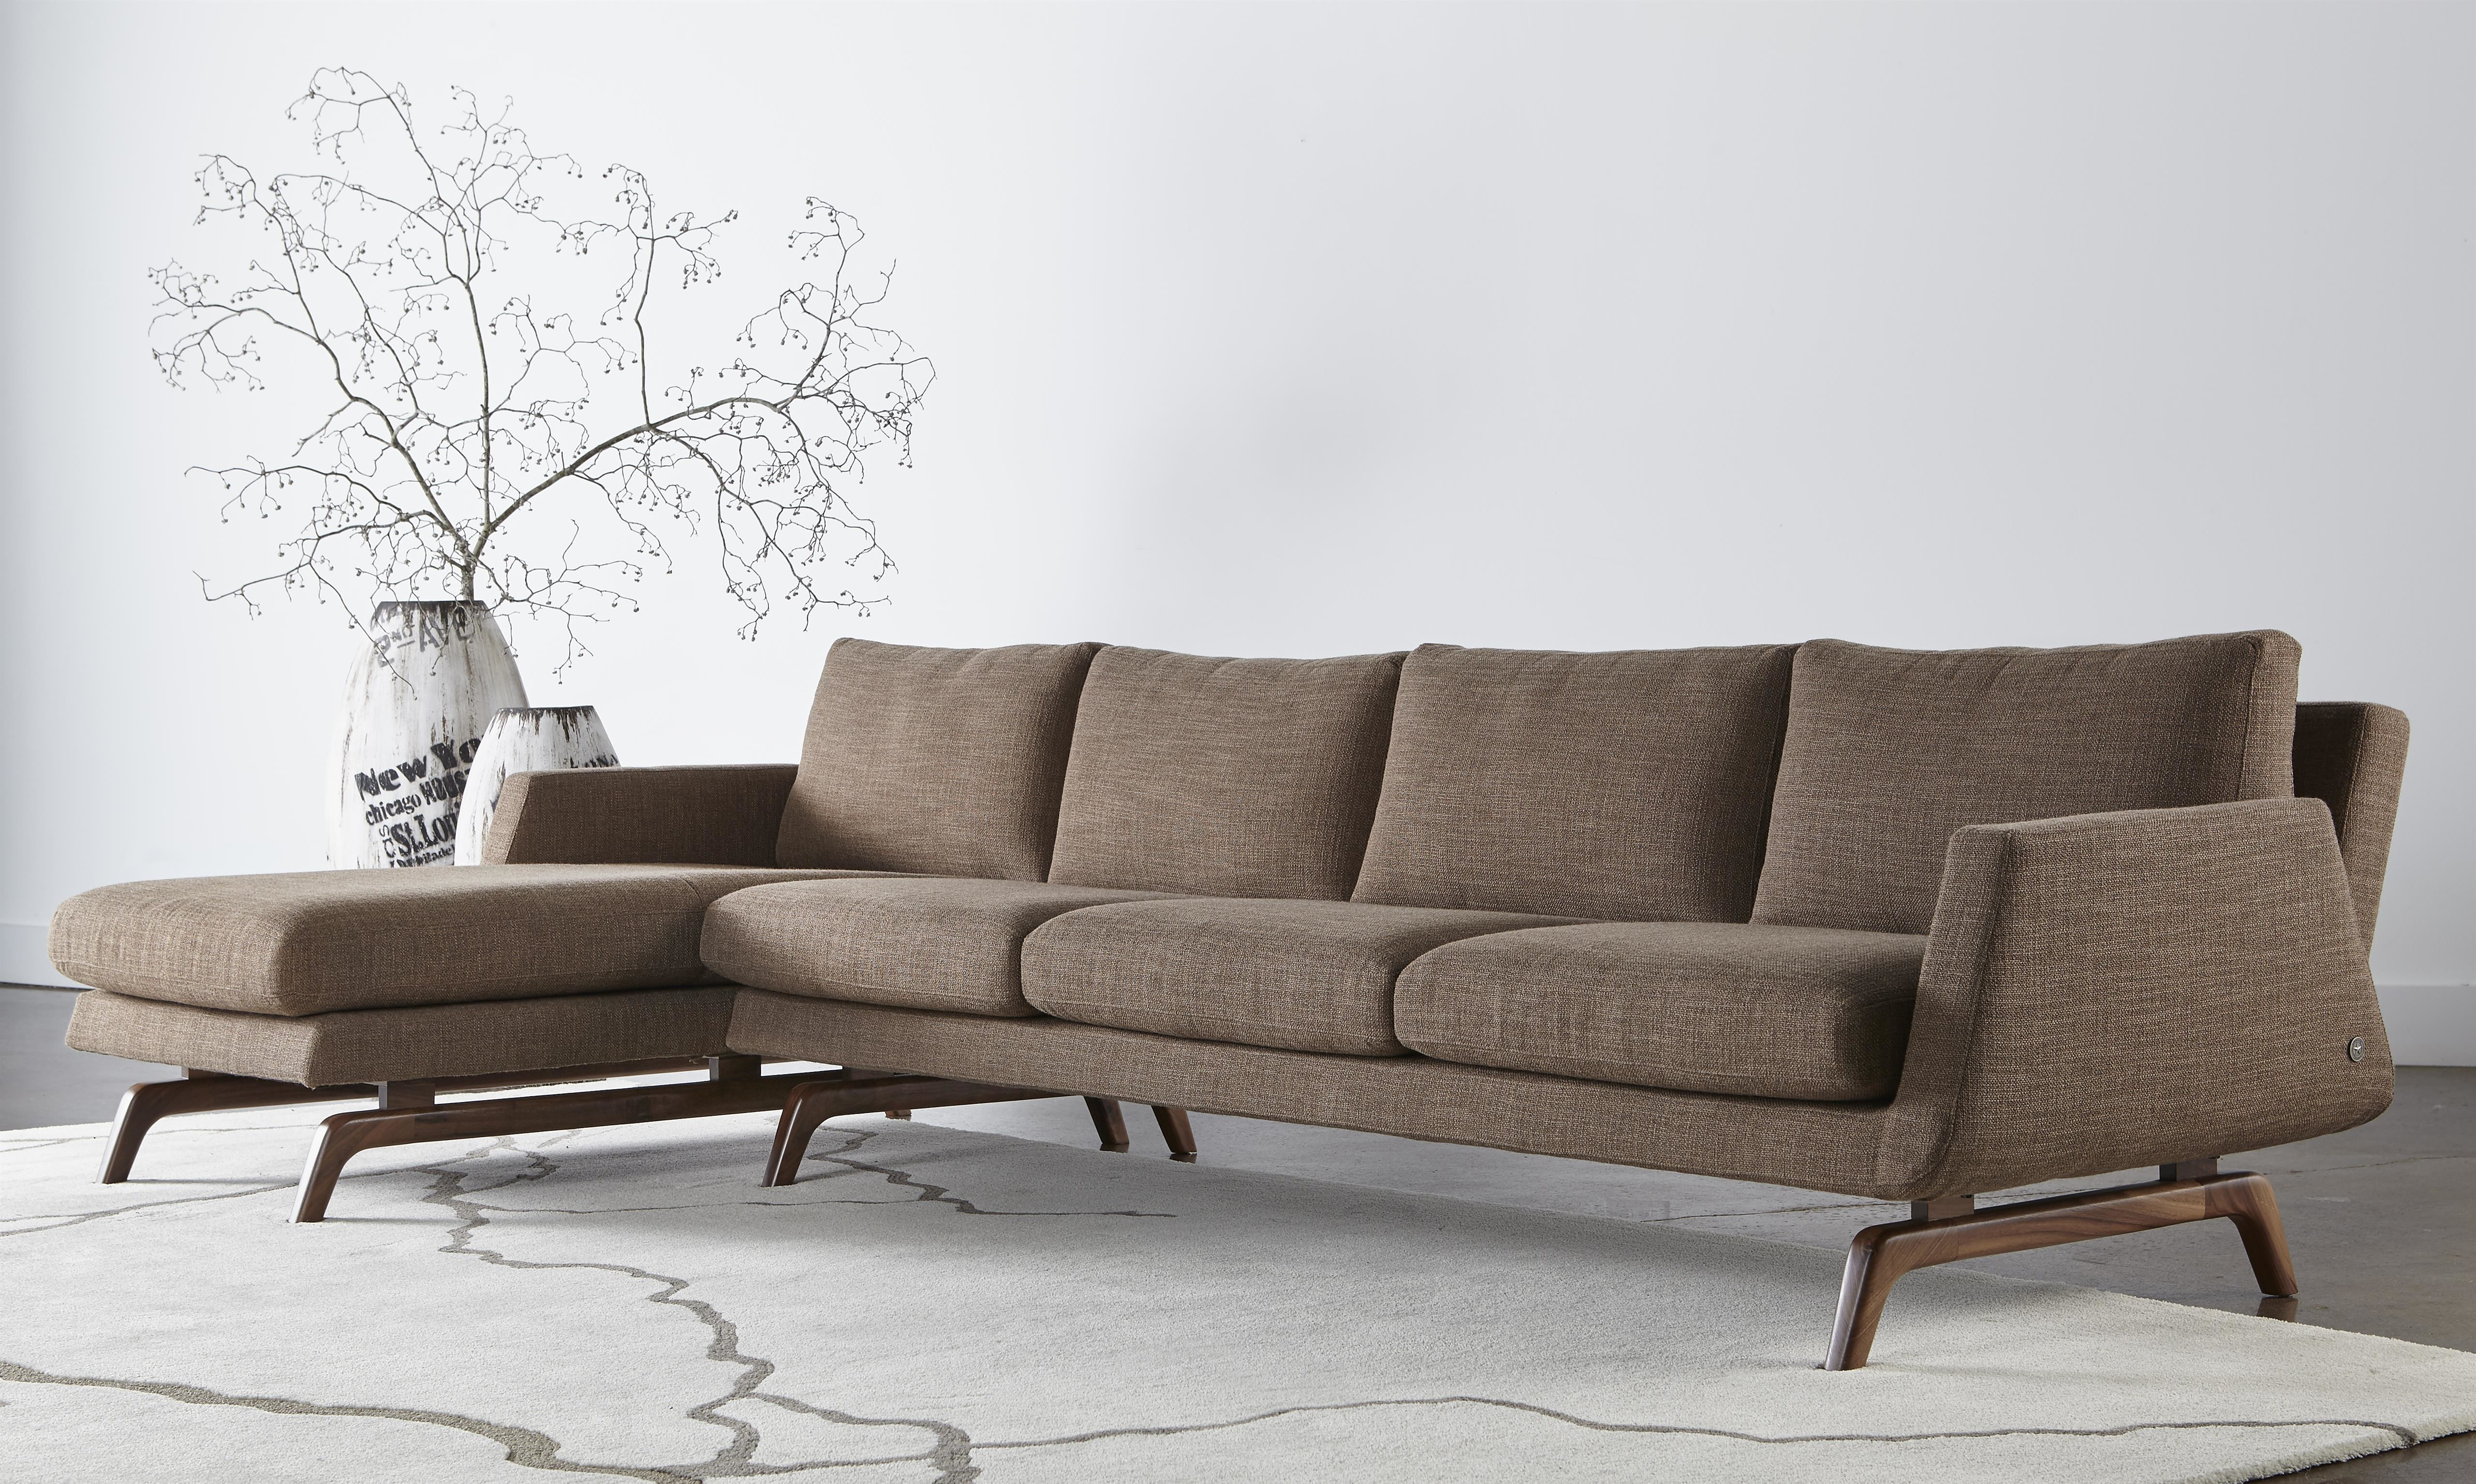 Kootenai Moon Furniture Sofas,Sectionals & Chairs, chaise lounge, ottoman, leather, fabric, living room, coffee tables